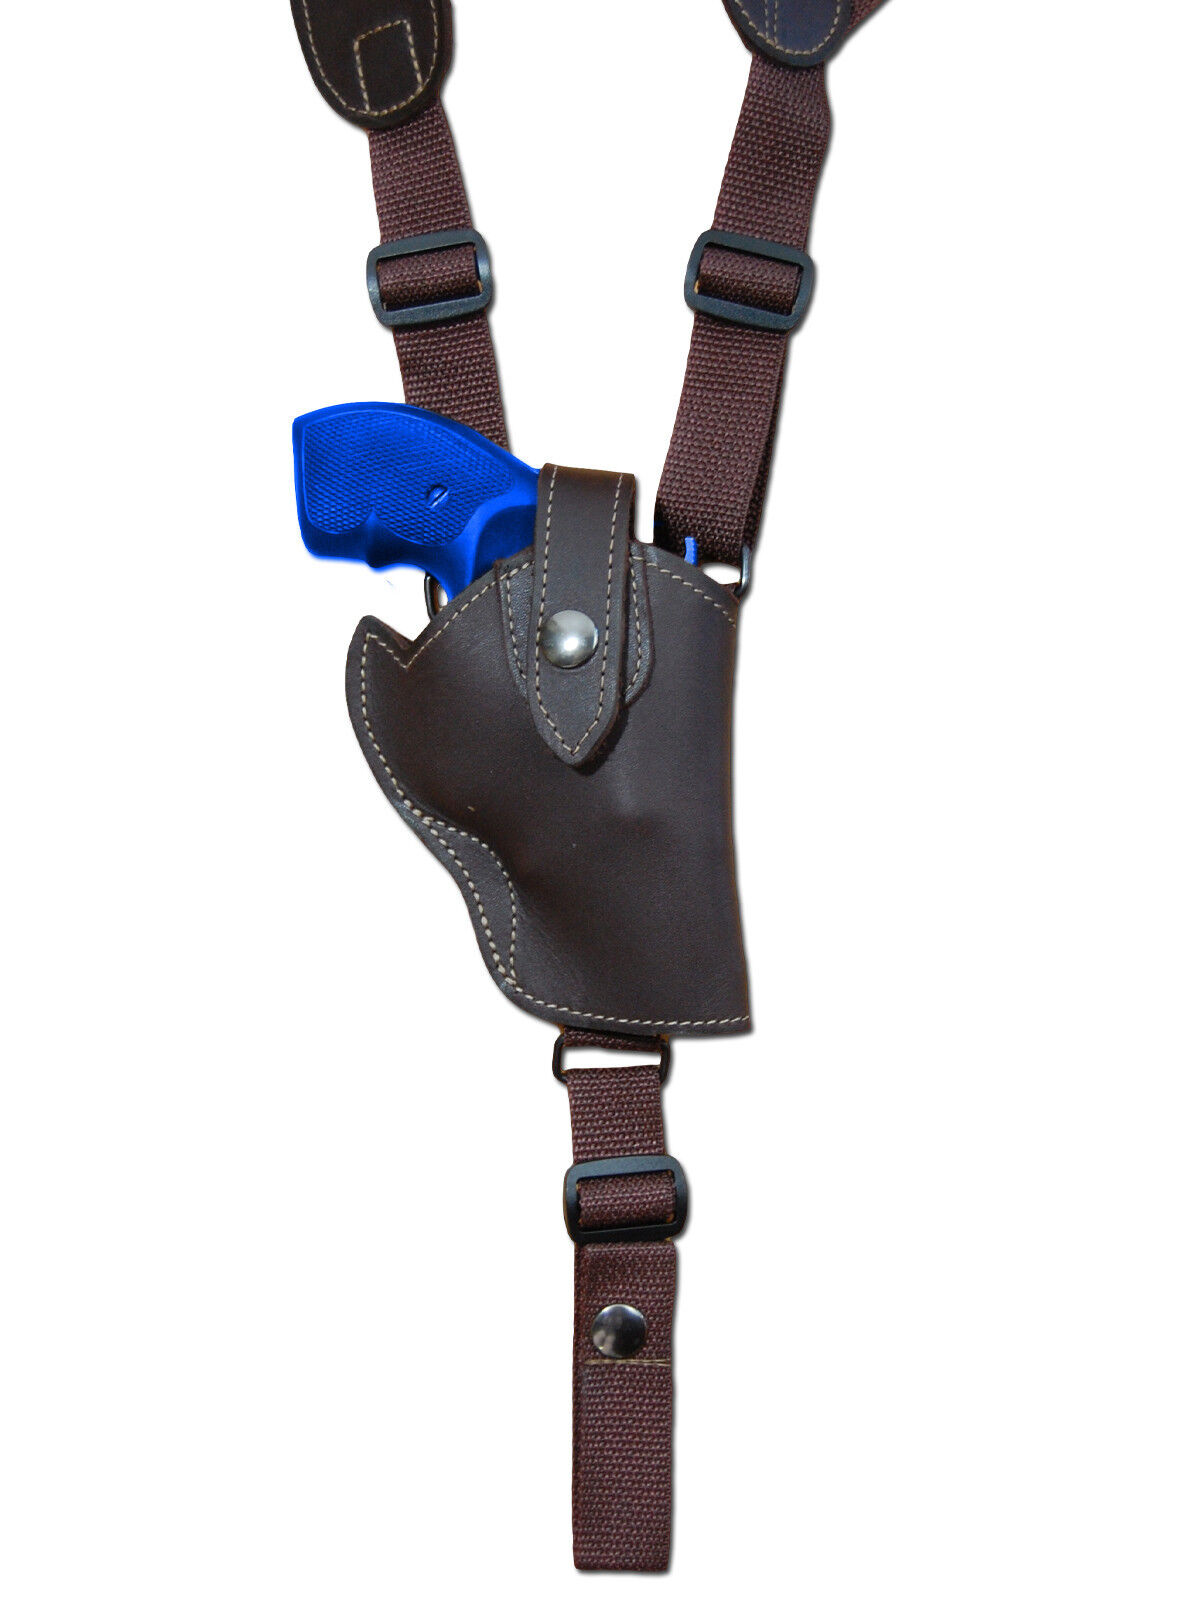 NEW Vertical Barsony Braun Leder Vertical NEW Gun Shoulder Holster for S&W 2